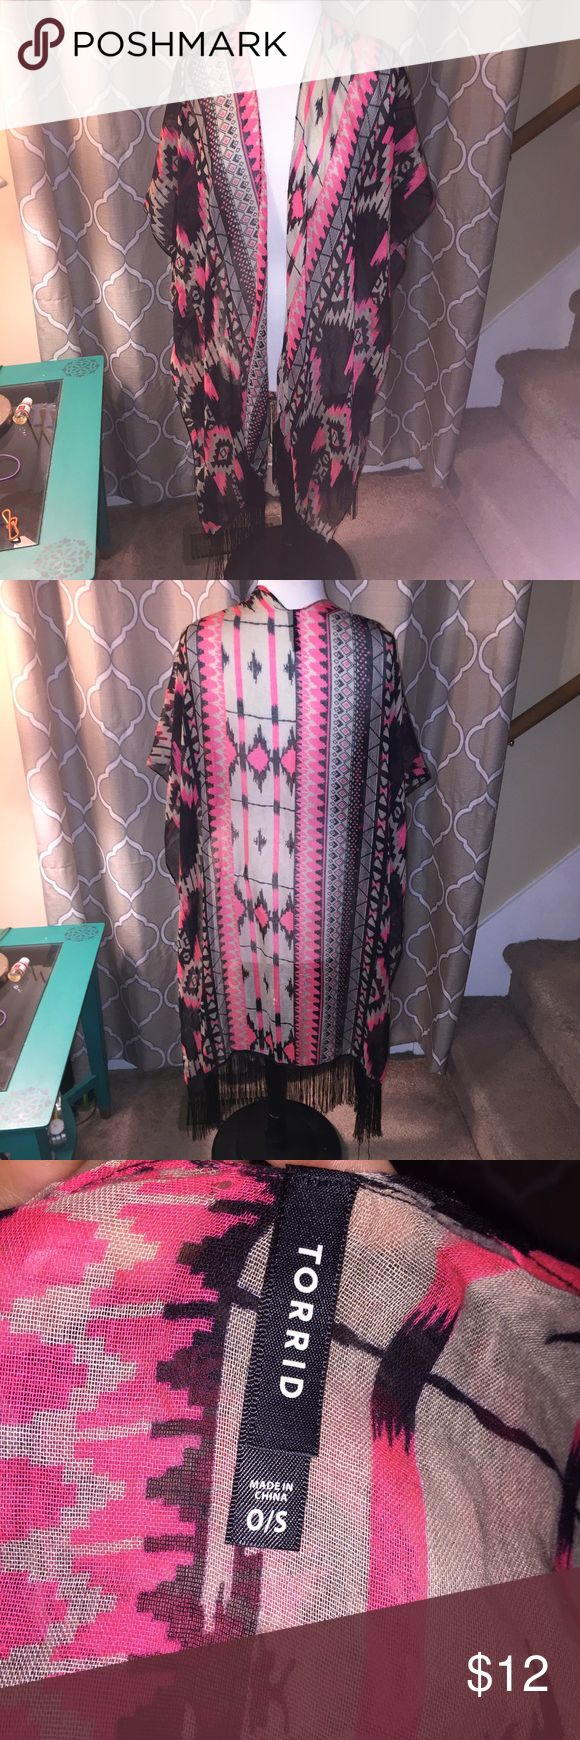 Torrid Aztec poncho pink blk fringe boho One size Torrid One Size Plus Fits 1X, 2X, 3X Tribal Gypsy Boho Aztec Fringe Poncho Sweater Cape Bright Pink & Black   Oversized Poncho Sweater/Wrap.  Open-Style open on sides for easy wear!  One Size: Plus (Fits 1X, 2X, 3X) Some signs of wear including a couple of small holes and small snags. Not noticeable when worn. Trendy, cute, Plus Size, torrid Tops Camisoles